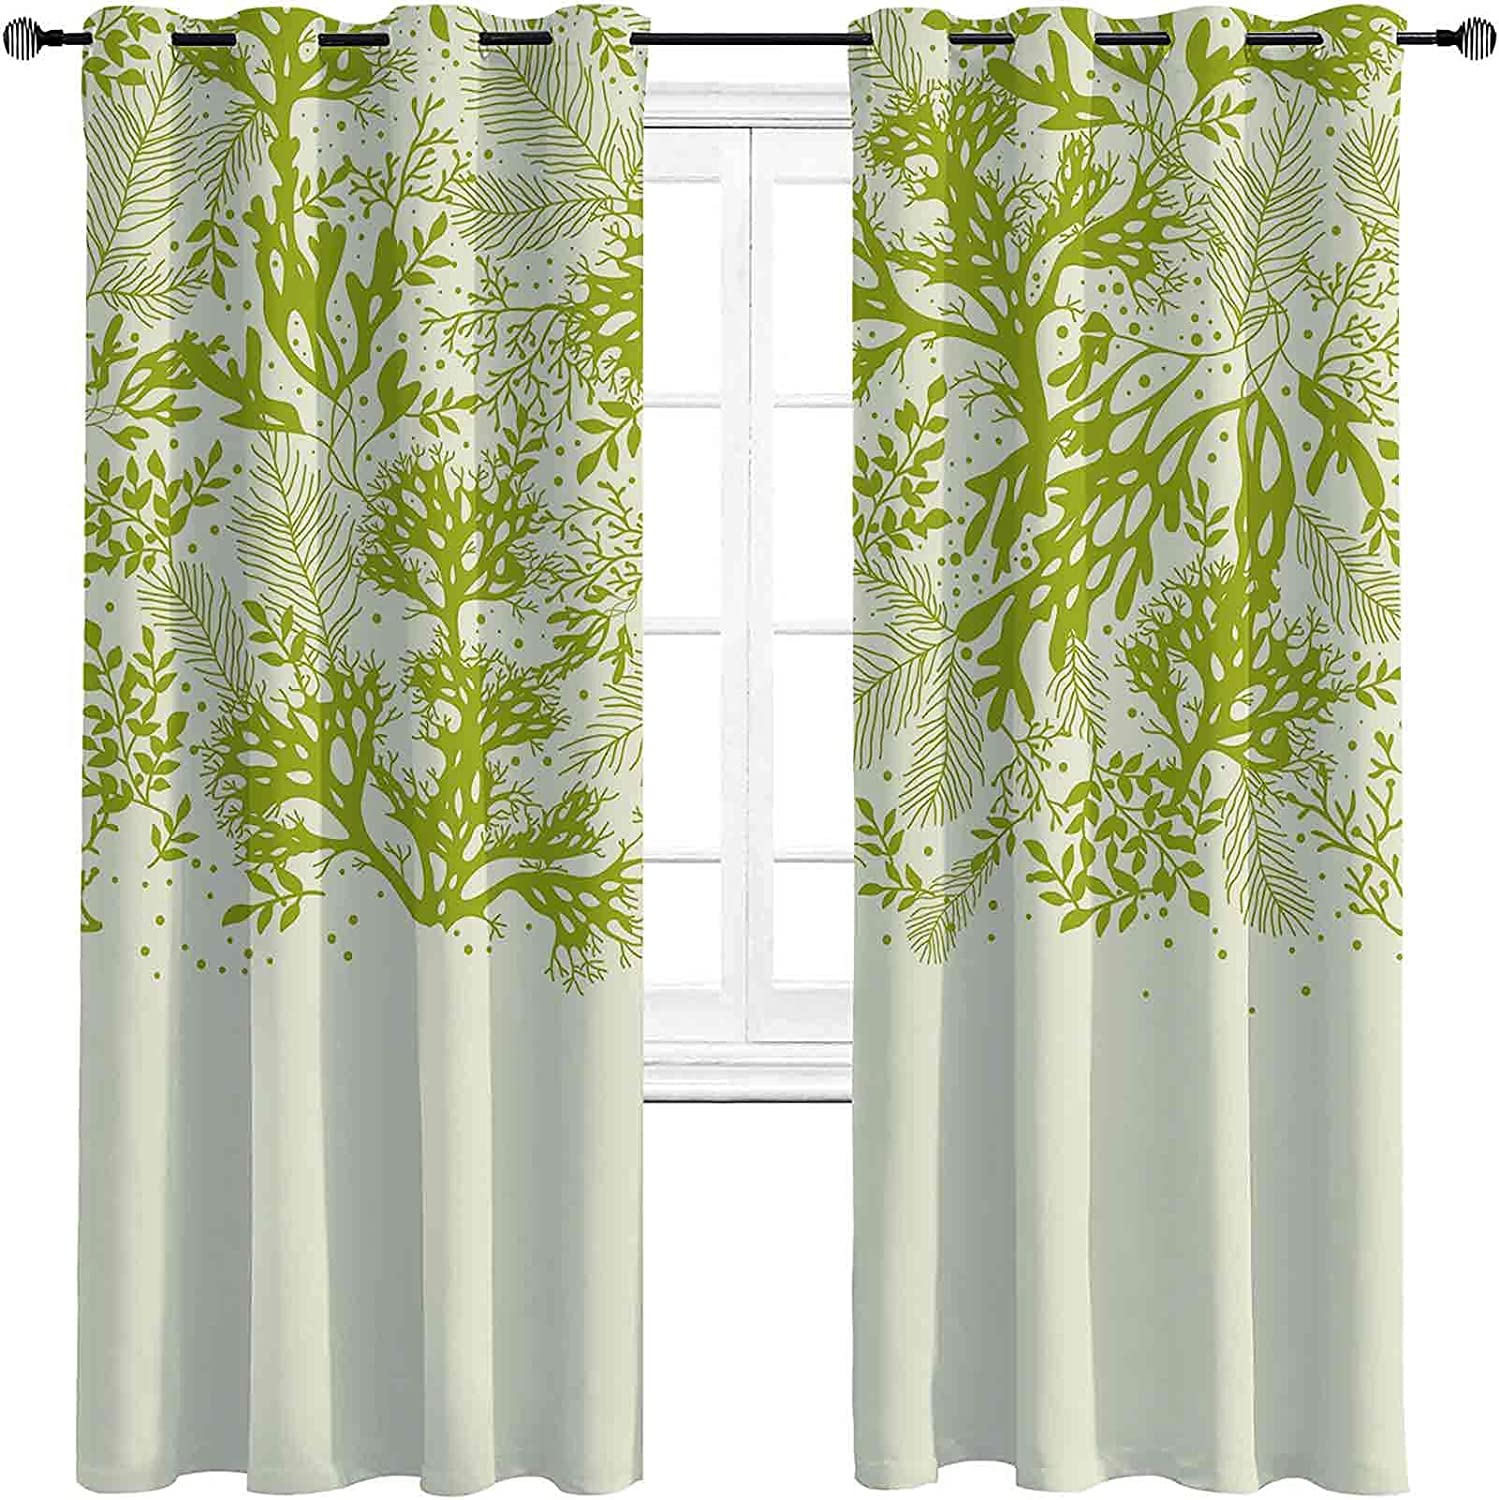 Green Max 85% OFF Bedroom Blackout Curtains Underwater Plants Ab Theme with Ranking TOP14